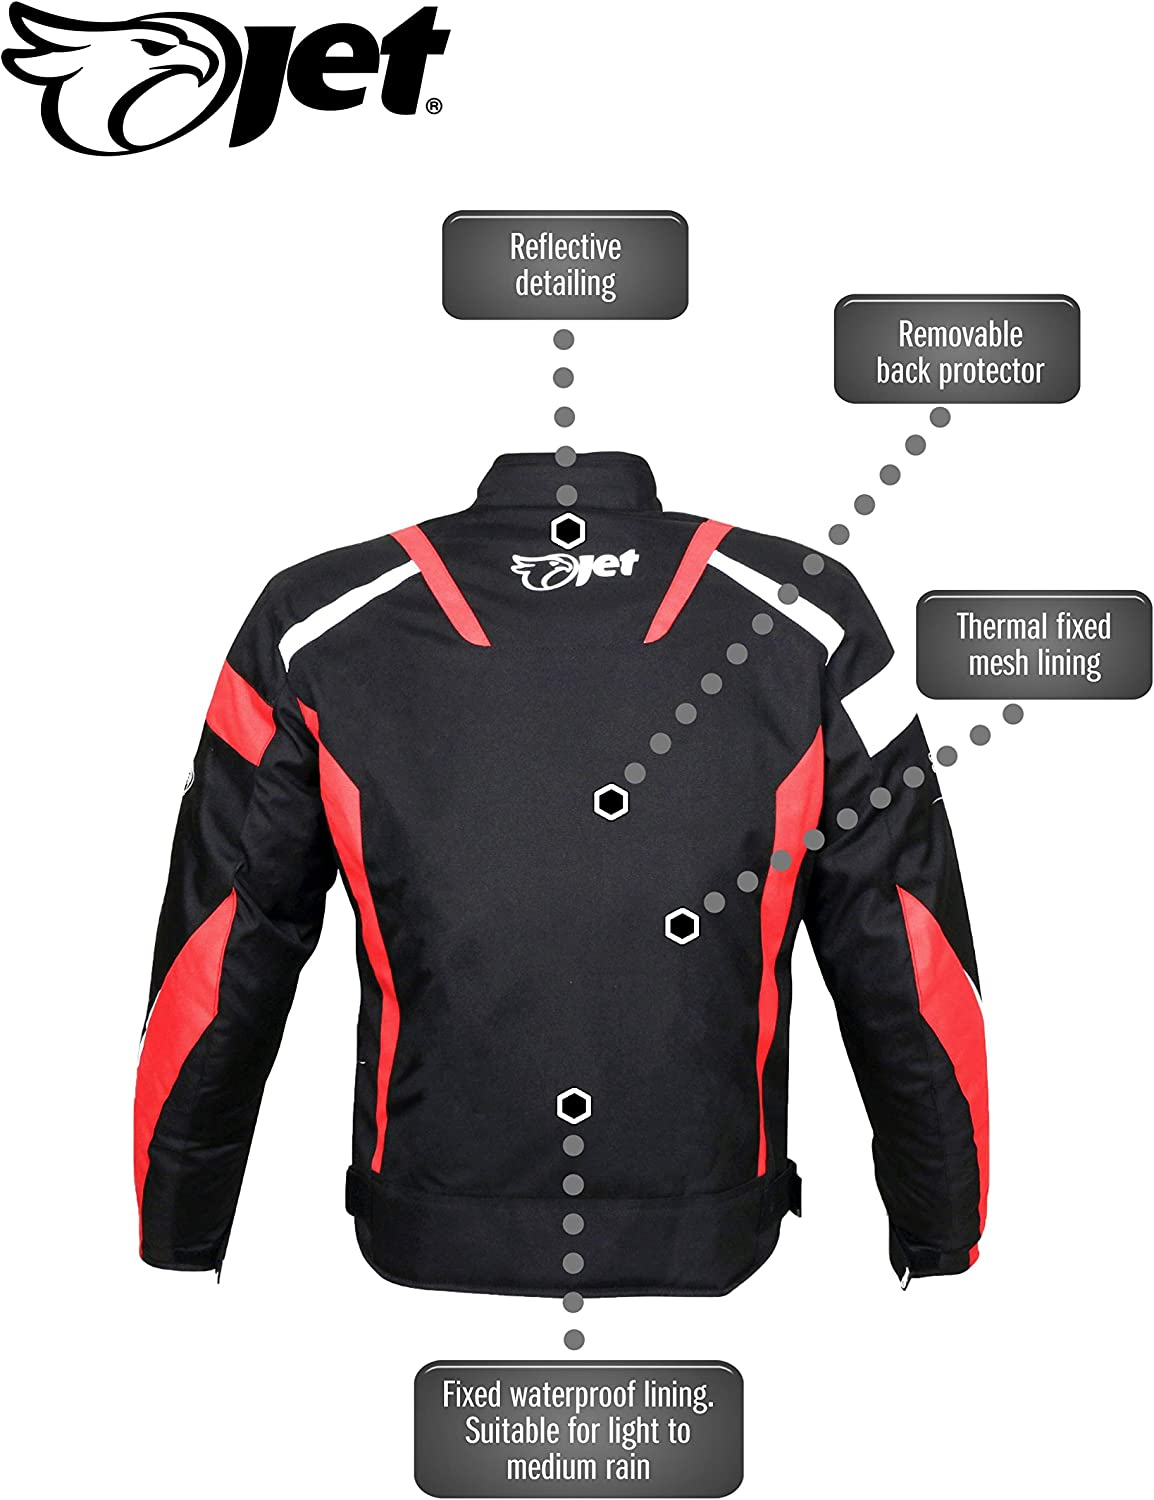 38-40 Green, Medium JET Motorcycle Motorbike Jacket Scooter Moped Commuter Urban Rider Protective Jacket Textile Armoured ECONOTECH